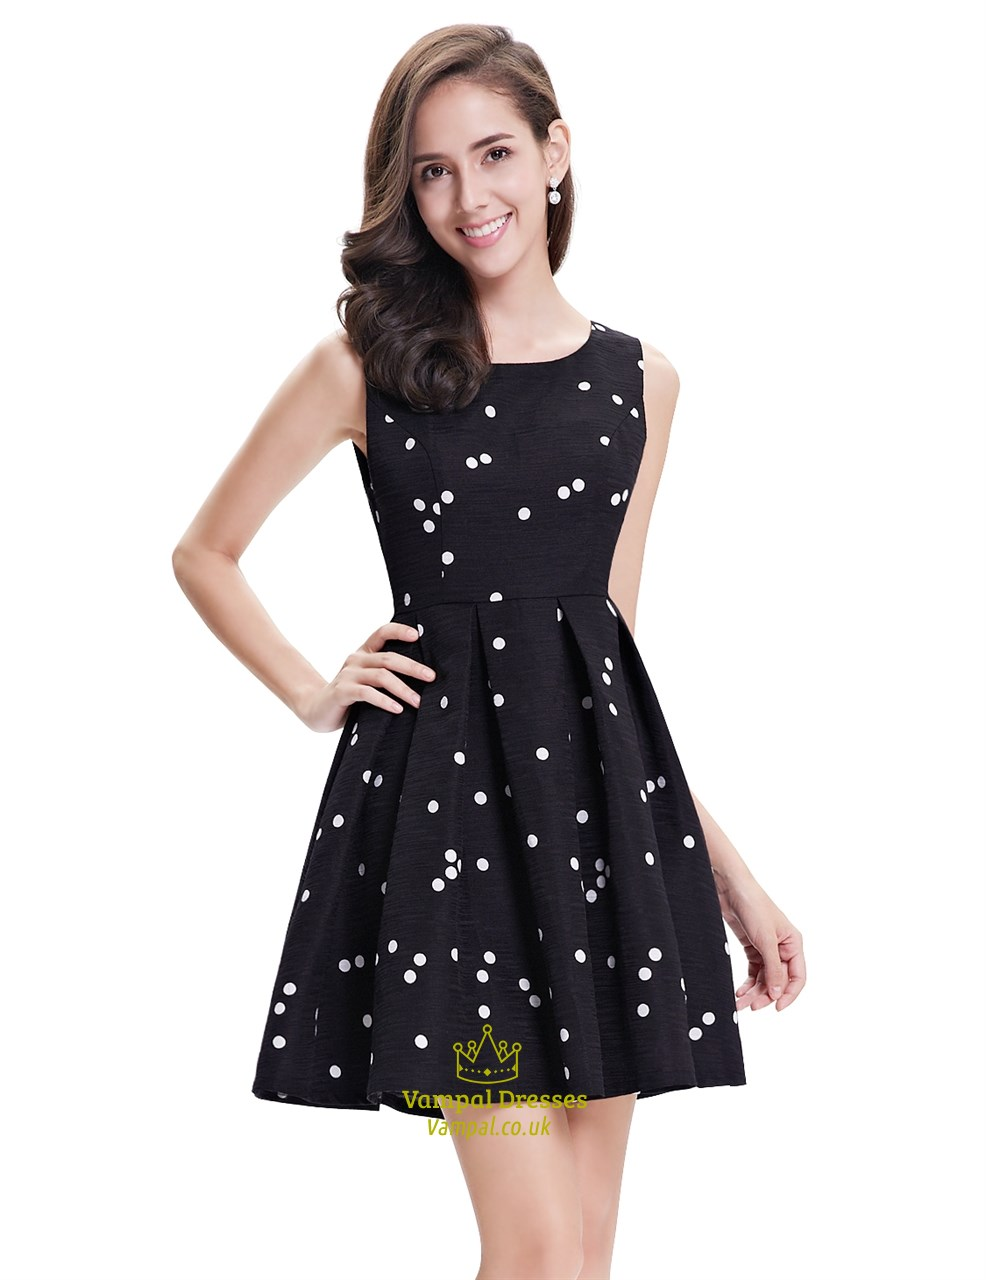 2969f6bb20f14 Black And White Polka Dot Sleeveless Short Dress For Cocktail Party ...